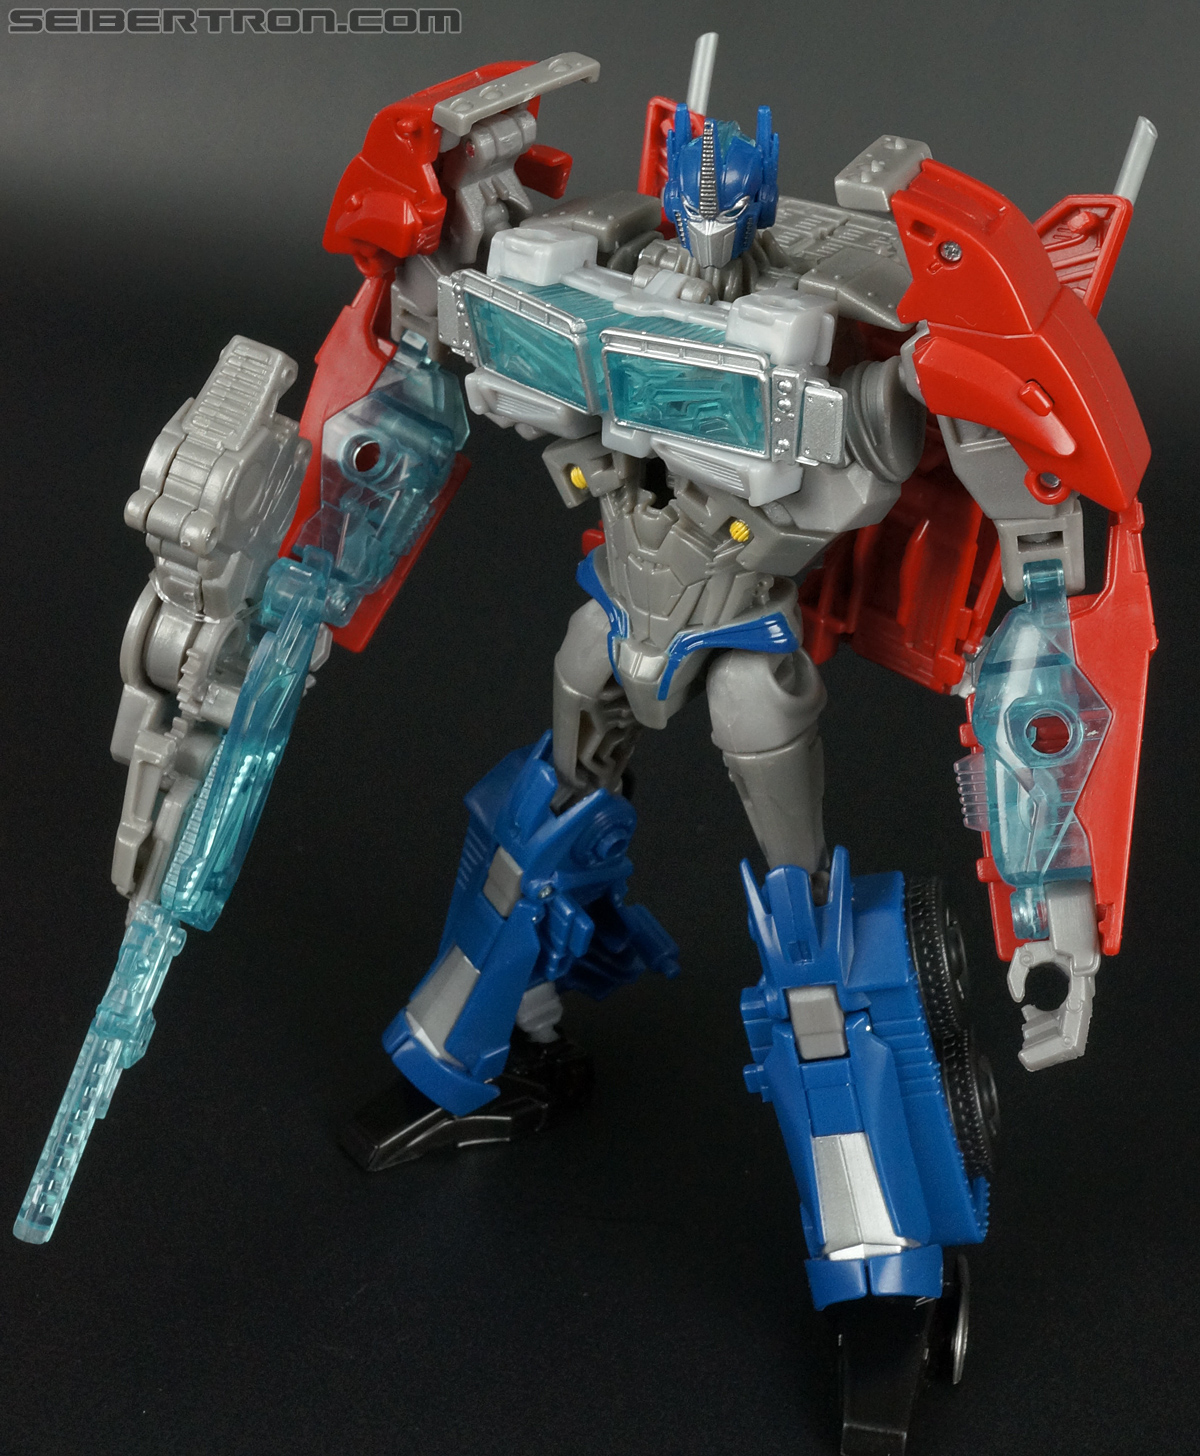 Transformers Prime: Robots In Disguise Optimus Prime (Image #139 of 176)